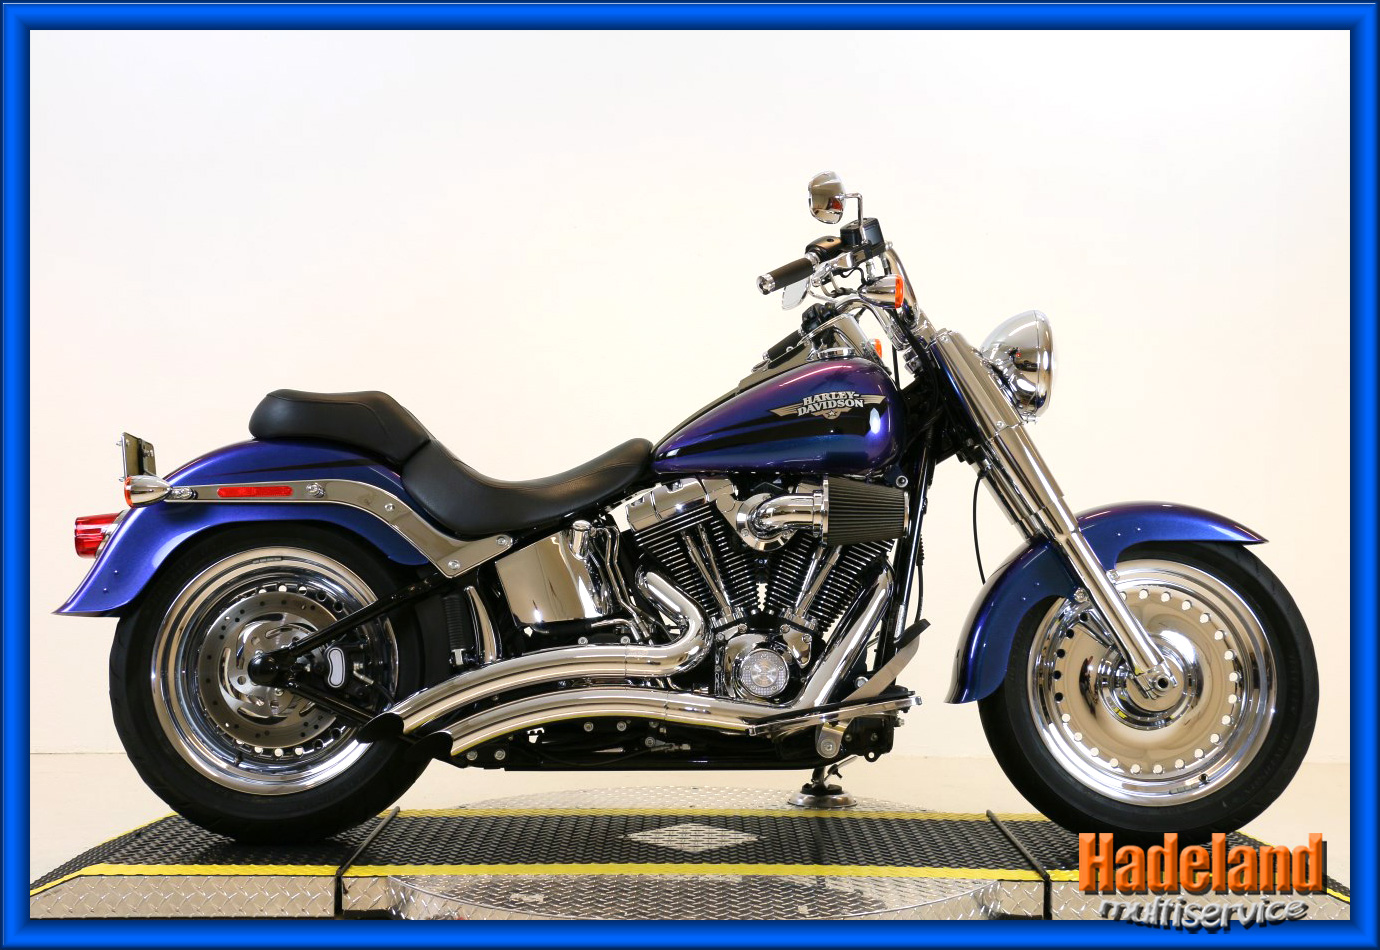 2010 HD Fat Boy 034429